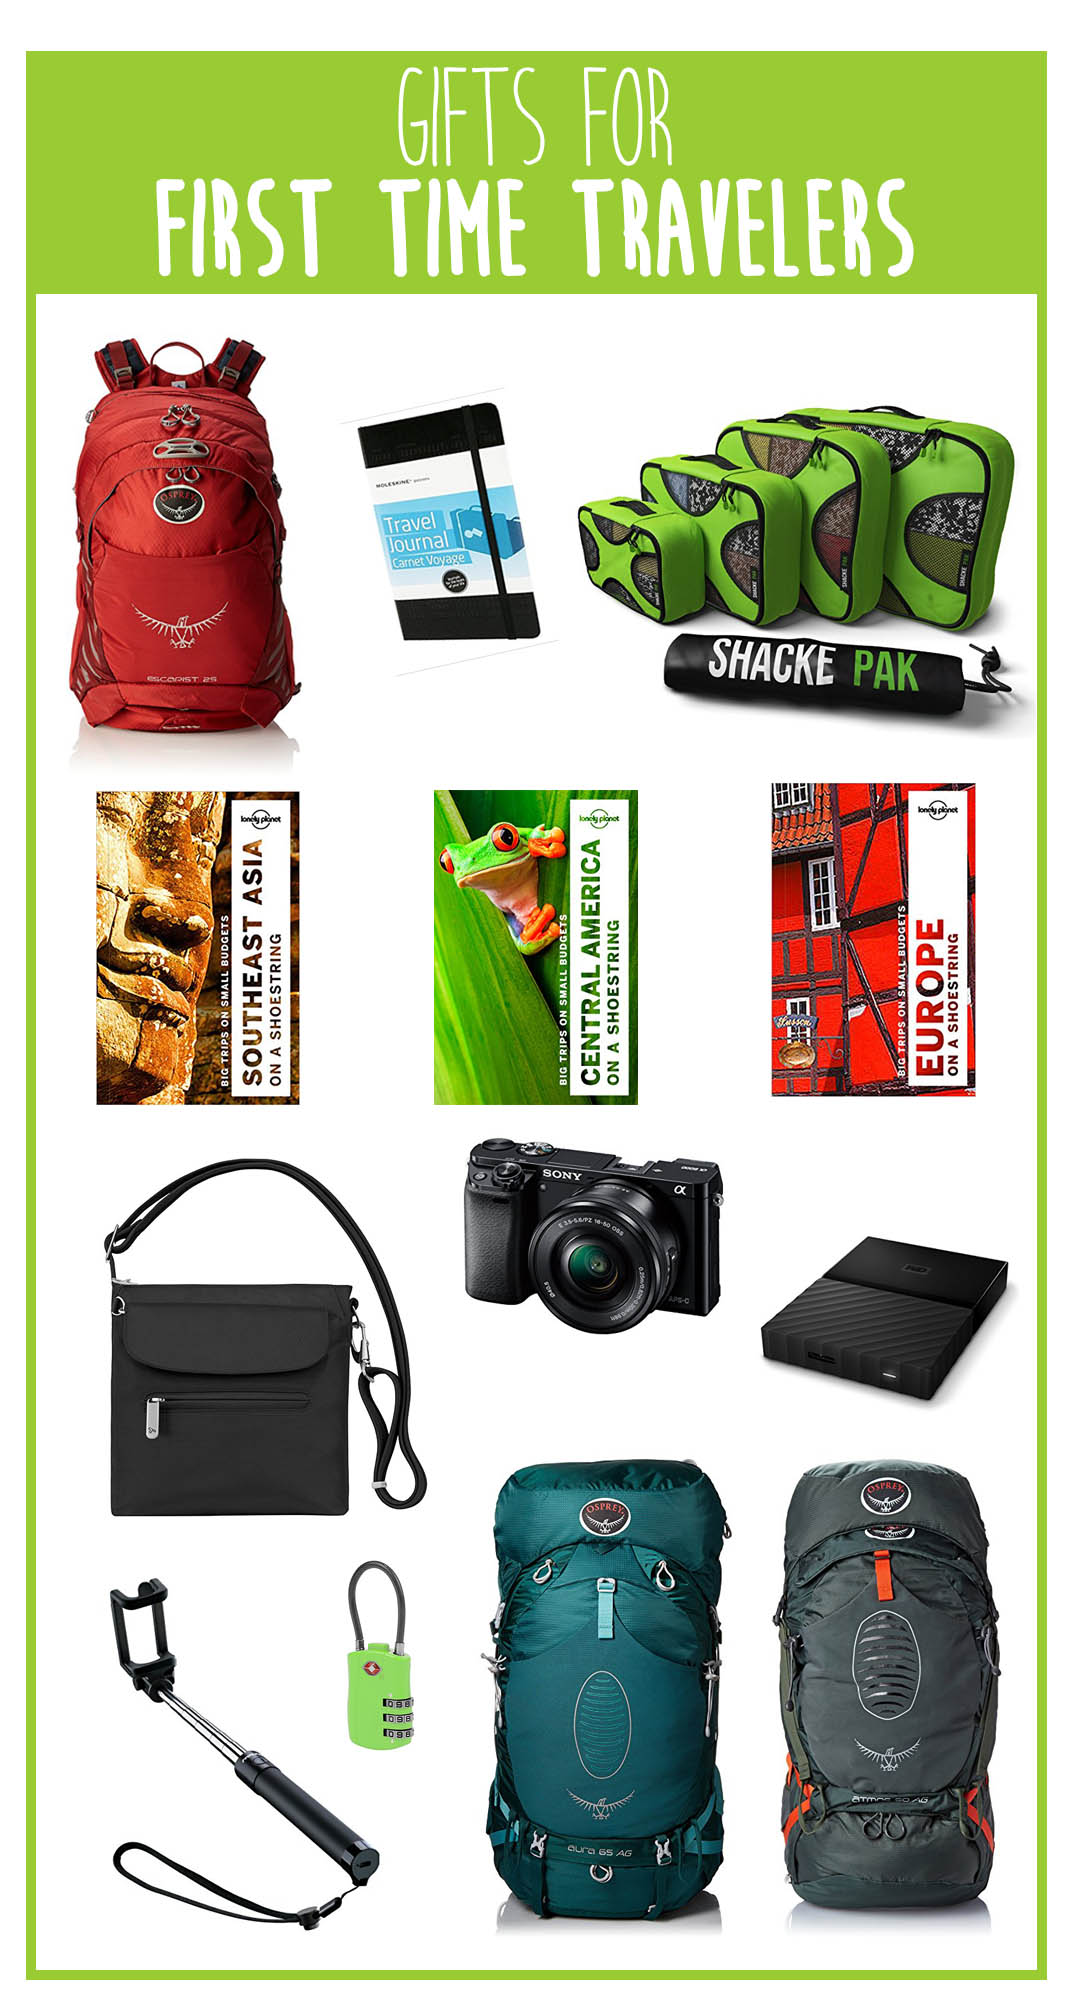 Gifts for travelers going abroad for the first time. - What to buy for a first time traveler.